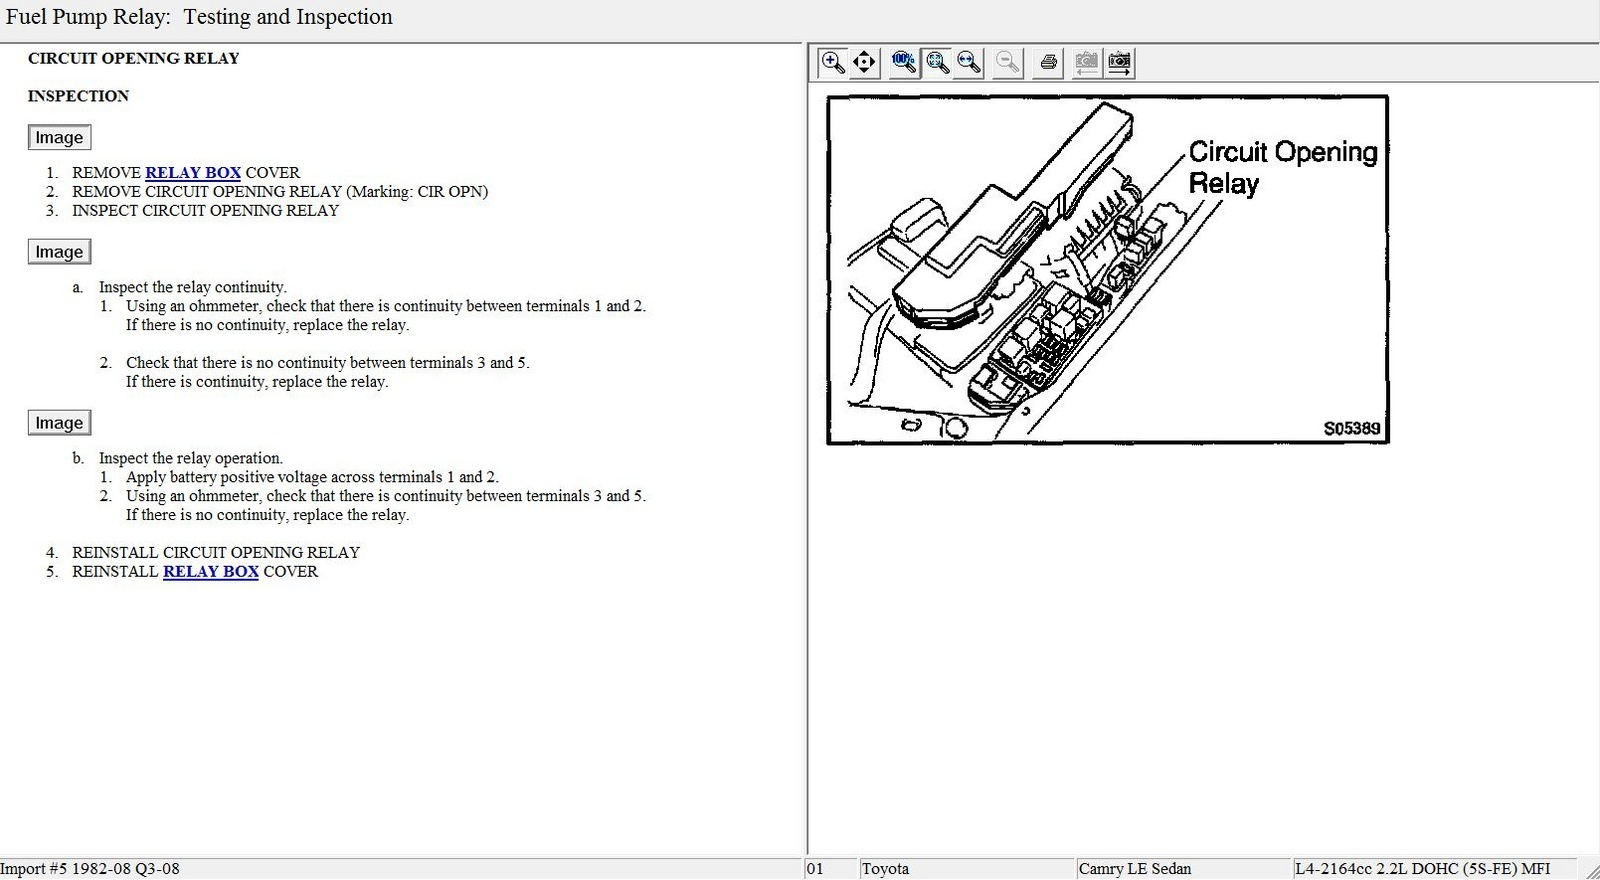 2003 Camry Fuel Pump Wiring Schematic Modern Design Of Toyota Harness Diagram And Accord Local Listings From Fuse Rh 12 52 Shareplm De Ford Connector Hot